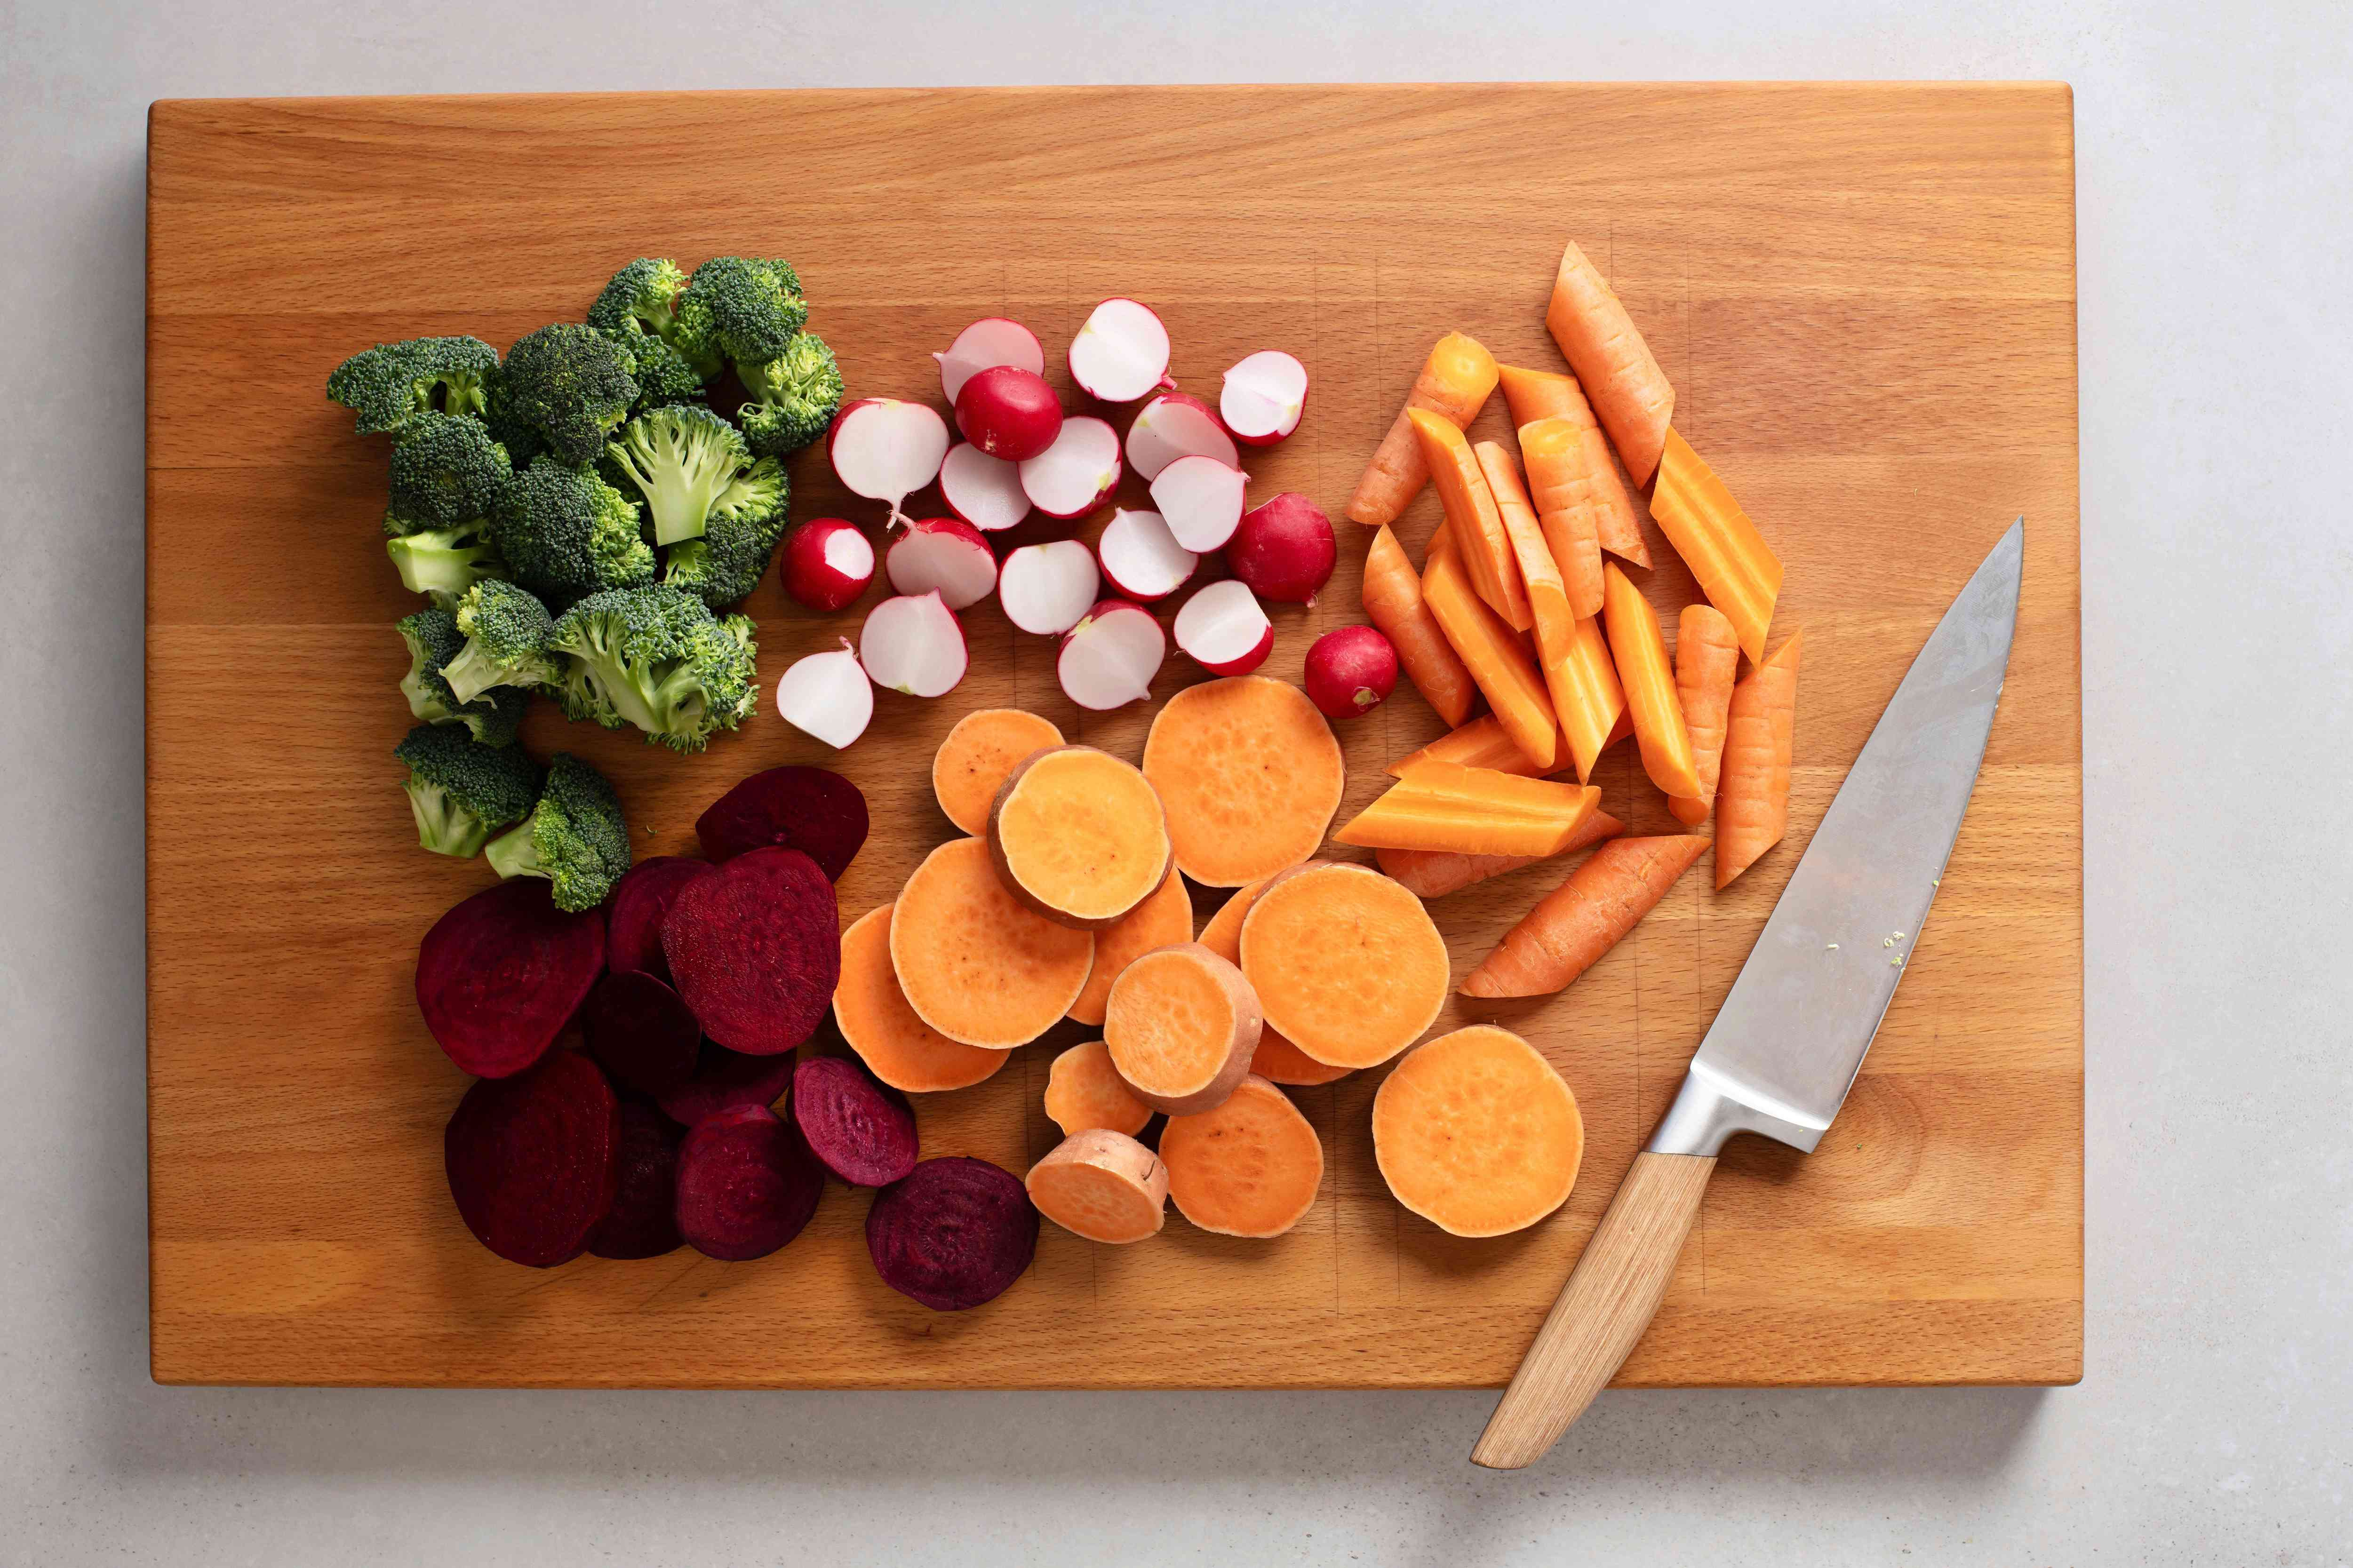 broccoli, radishes, carrots, beets, and yams cut on cutting board with a knife